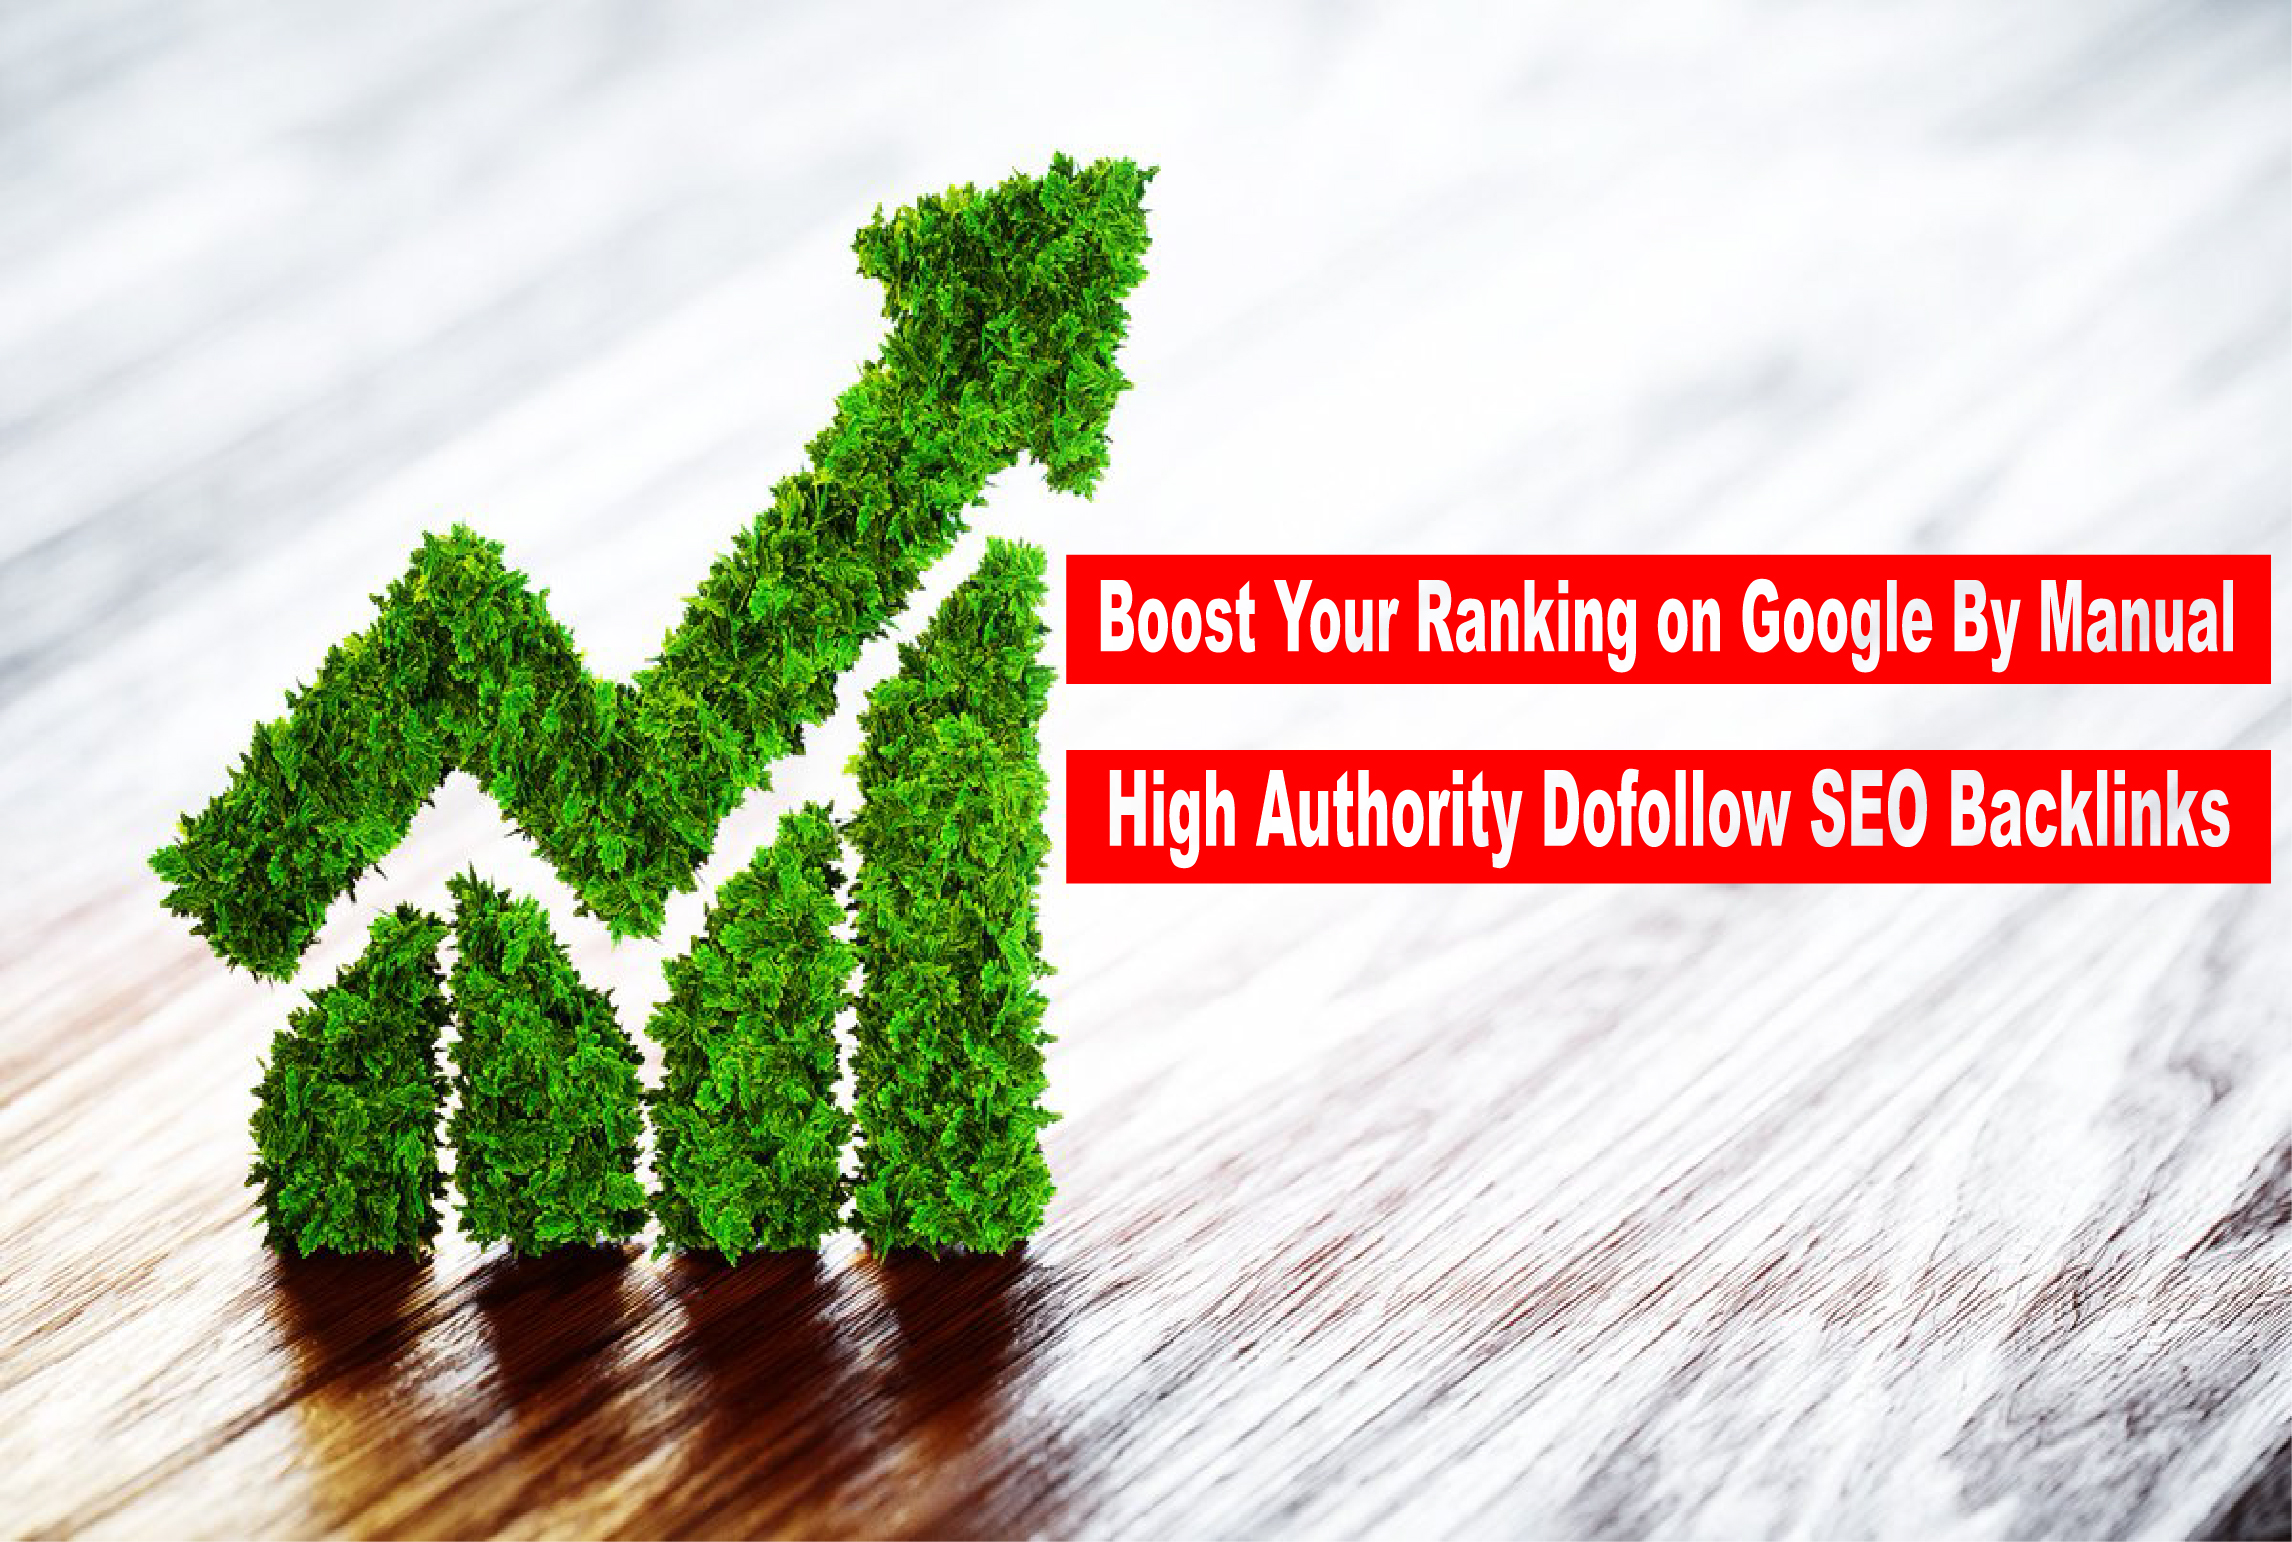 Boost Your Ranking on Google Manual High Authority SEO Backlinks